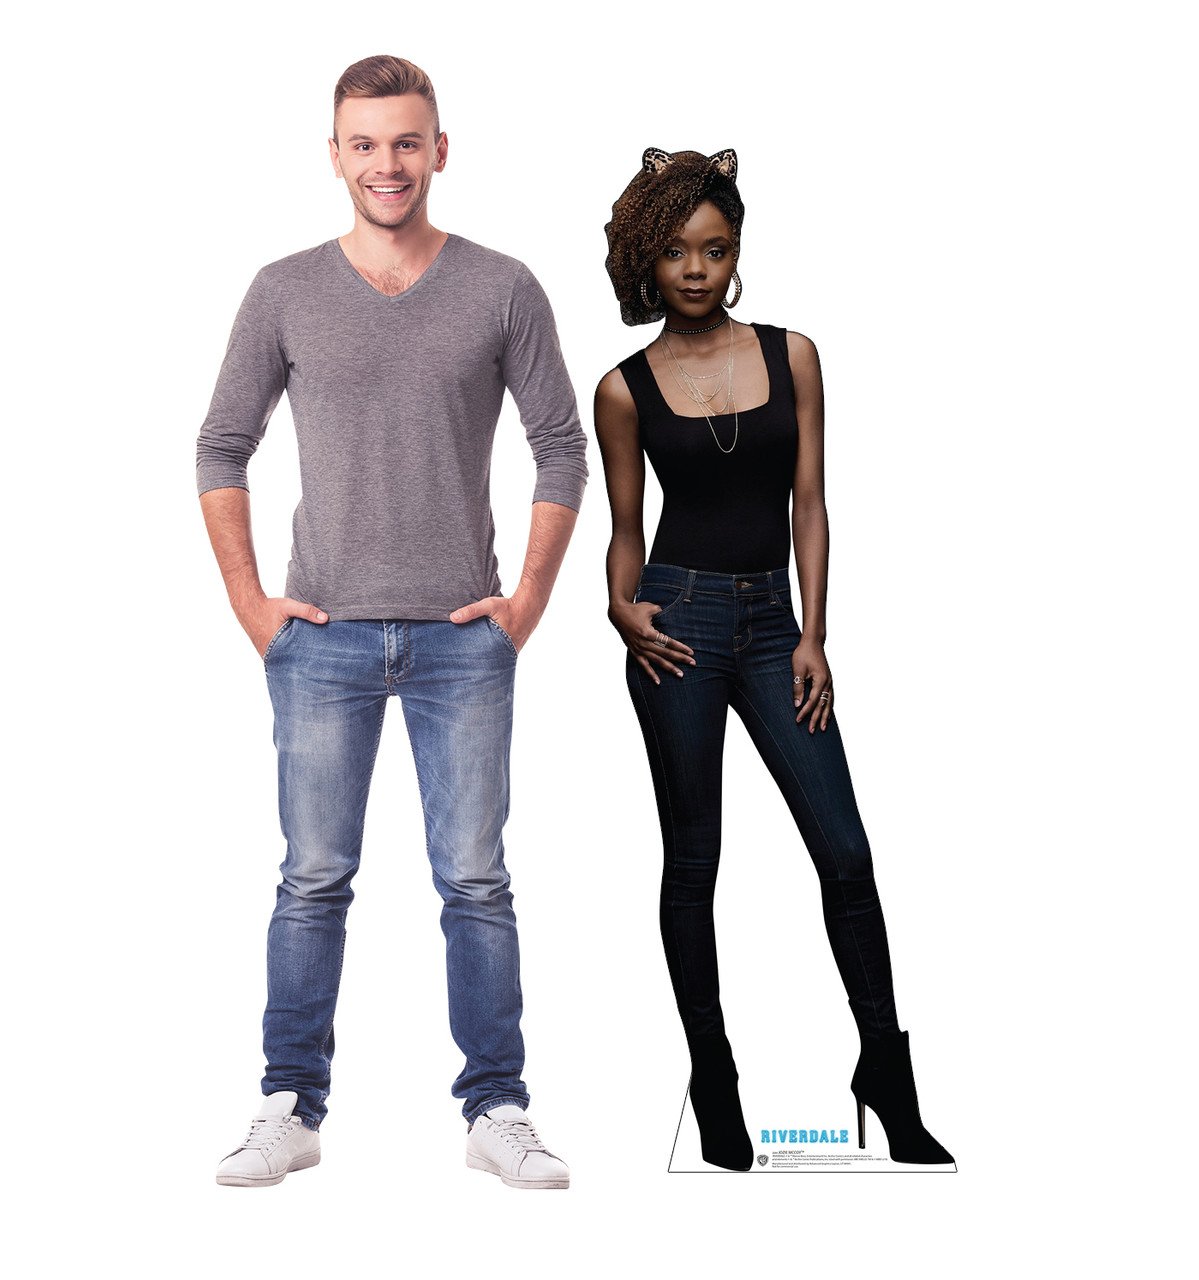 Life-size cardboard standee of Josie McCoy from the TV Series Riverdale with model.